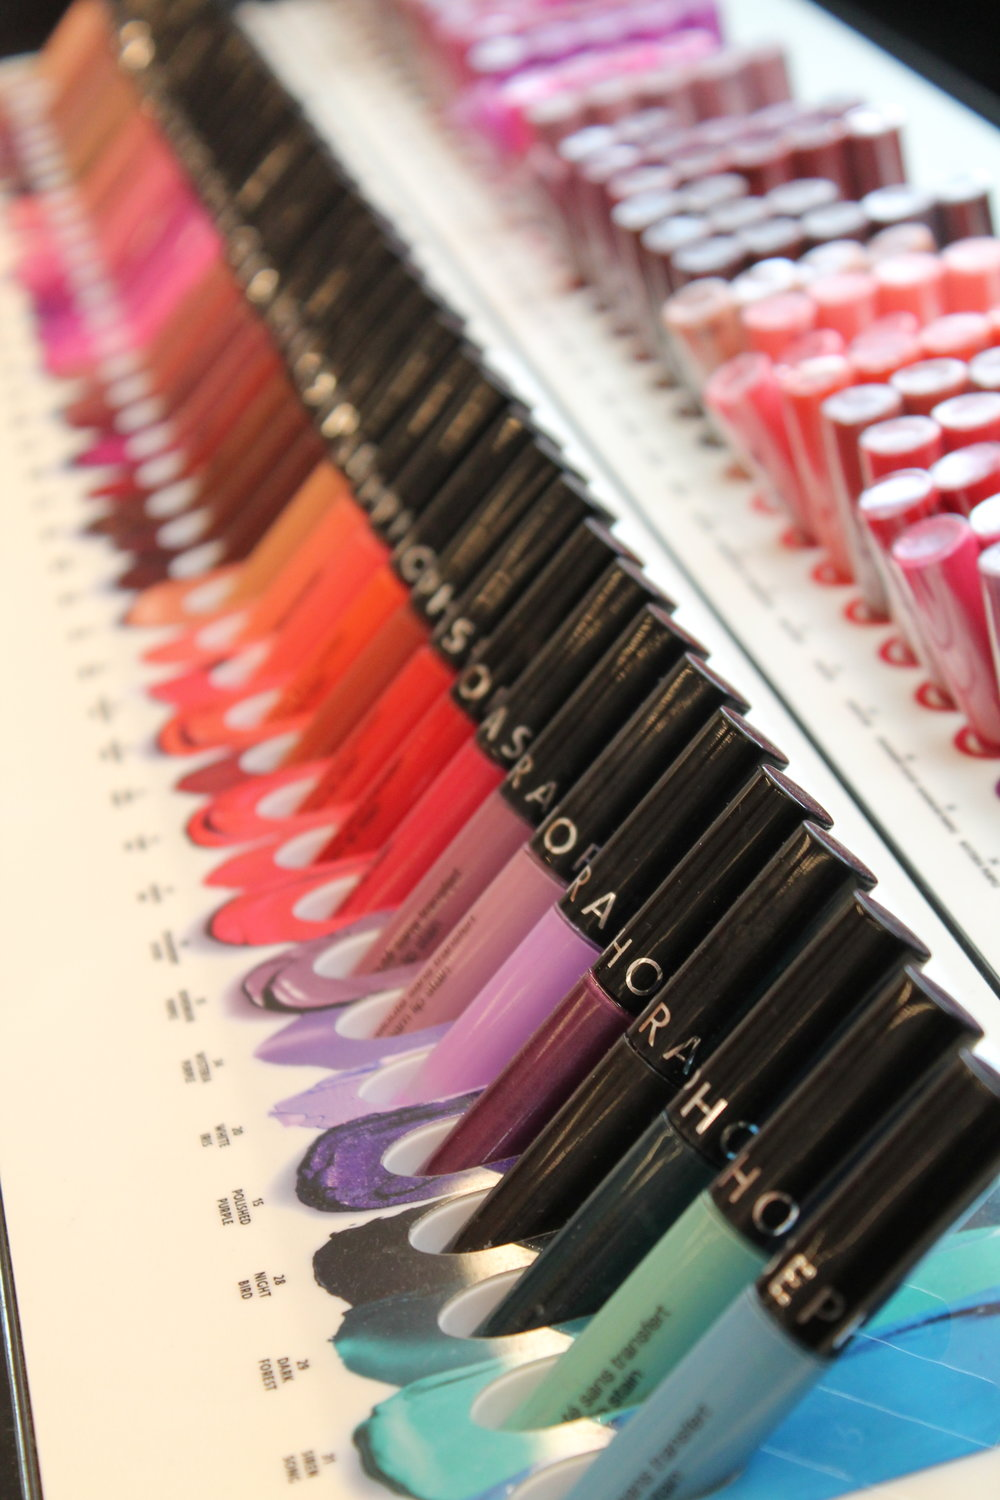 A rainbow of colour in Sephora's own cosmetics line.